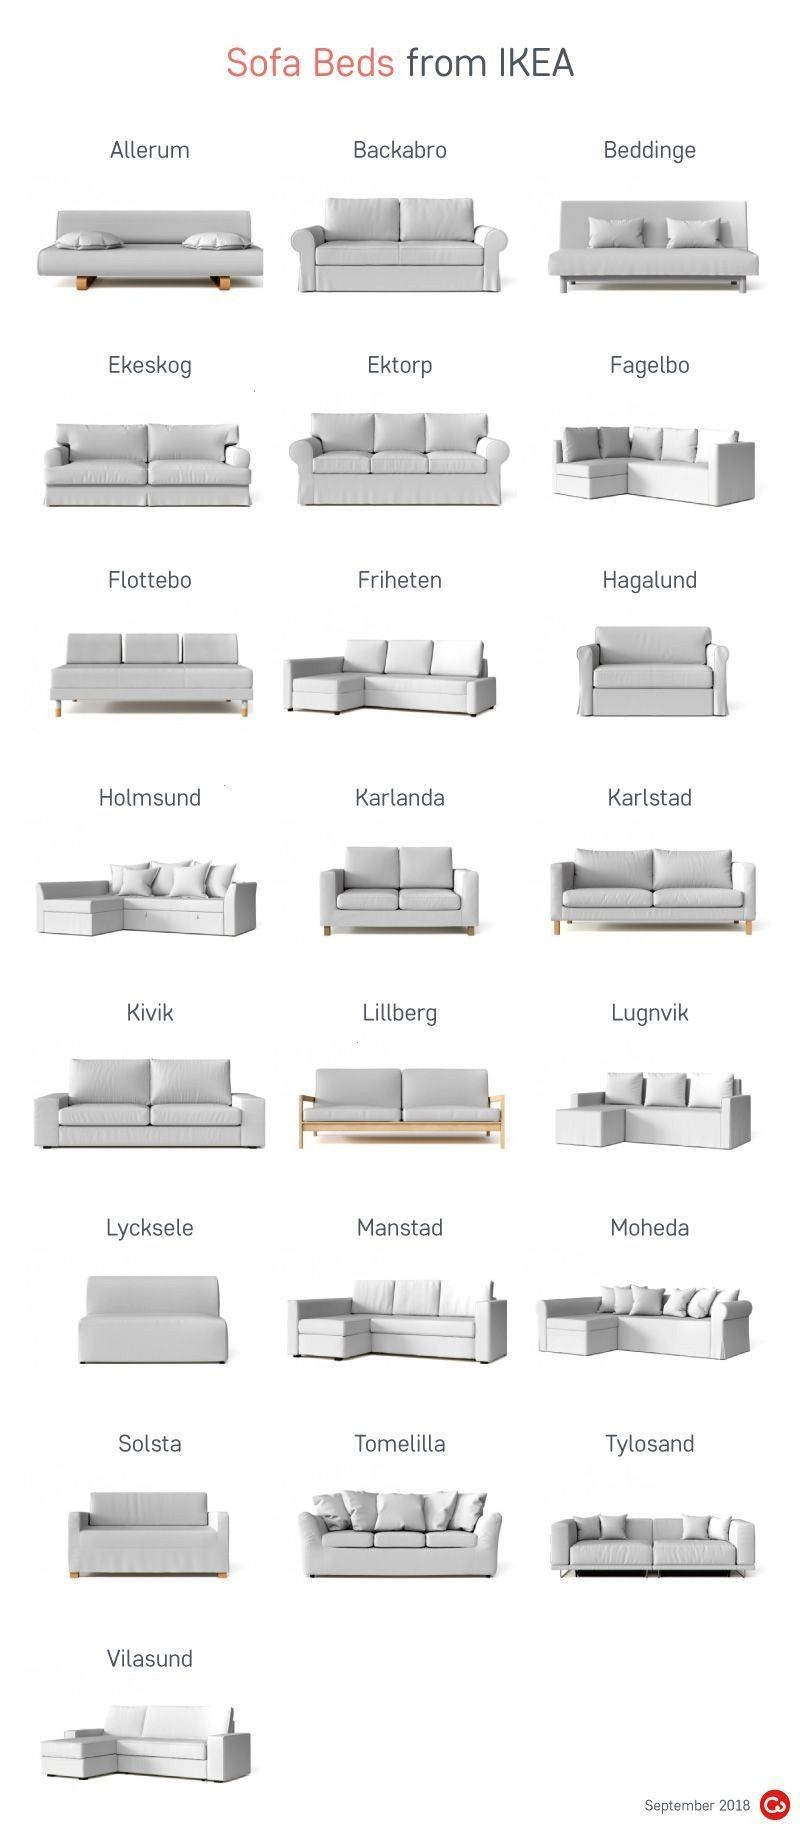 IKEA Sofa Covers for Discontinued IKEA Couch ModelsReplacement IKEA Sofa Covers for Discontinued IK